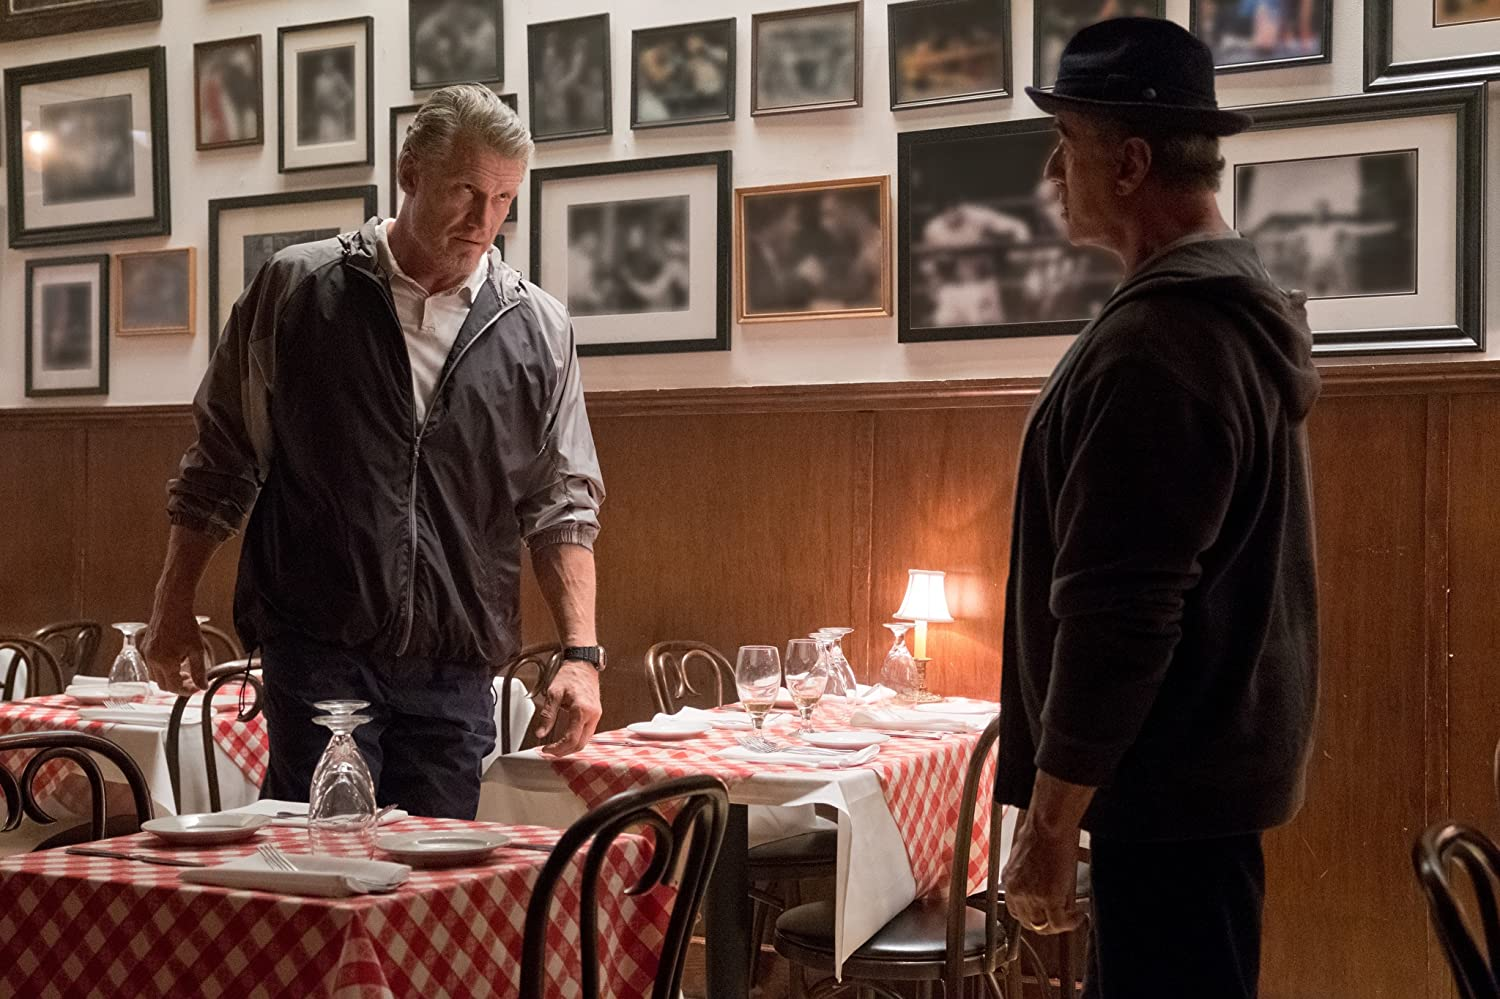 Dolph Lundgren and Sylvester Stallone in Creed II (2018)